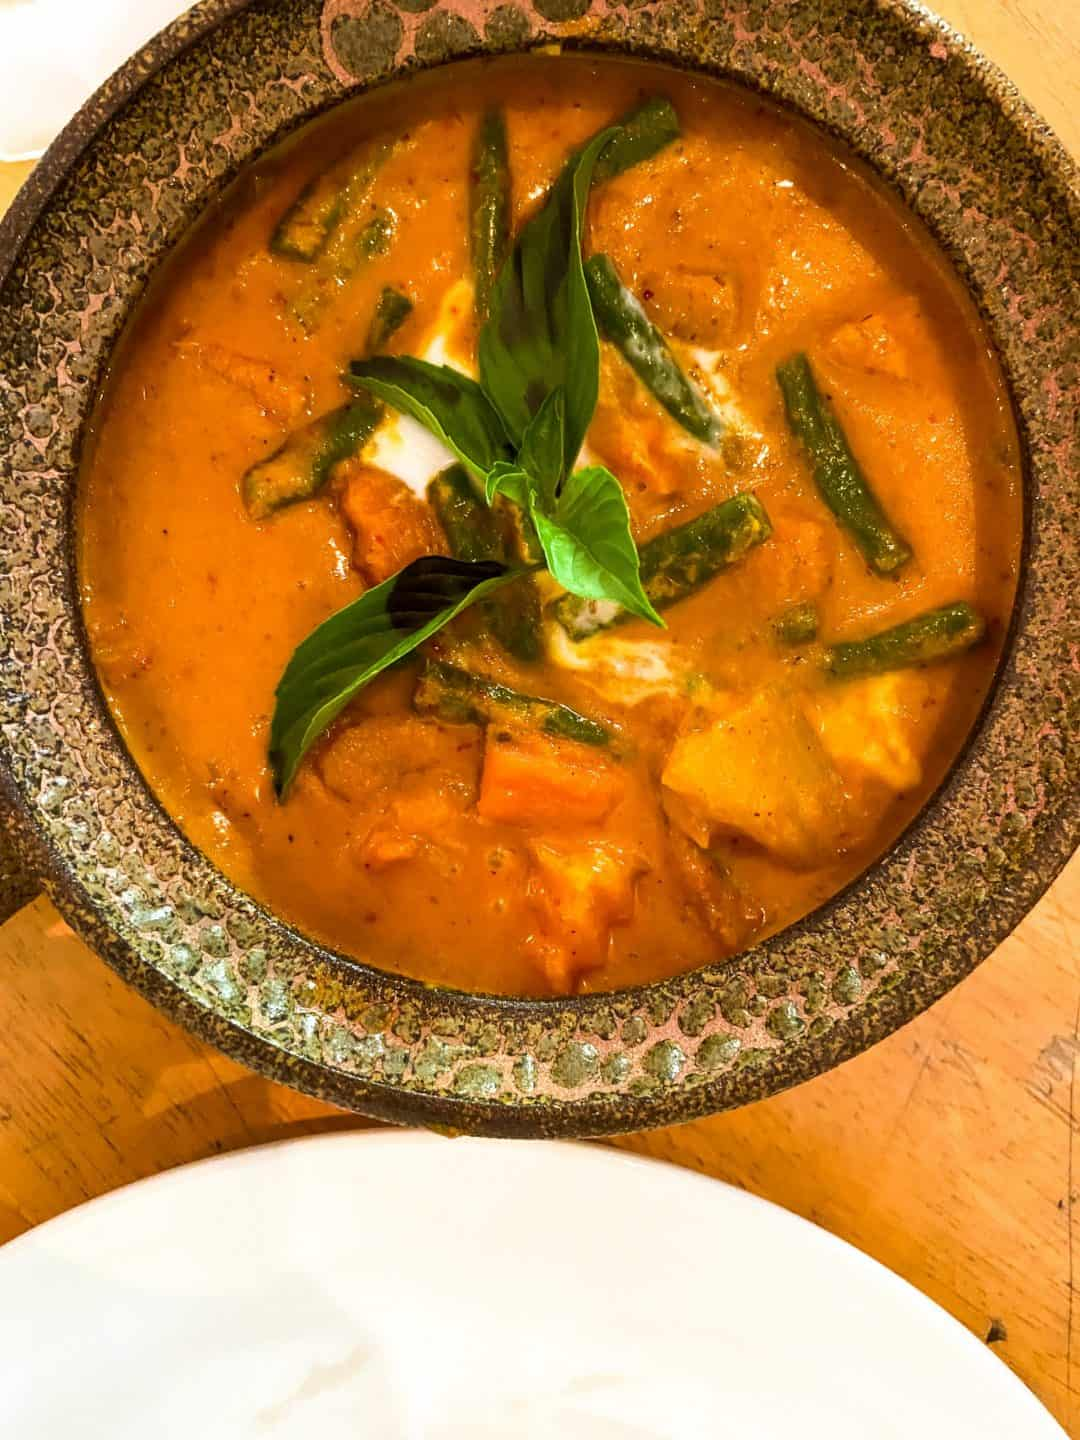 Cambodia Vegetable Curry at Footprint Cafe's